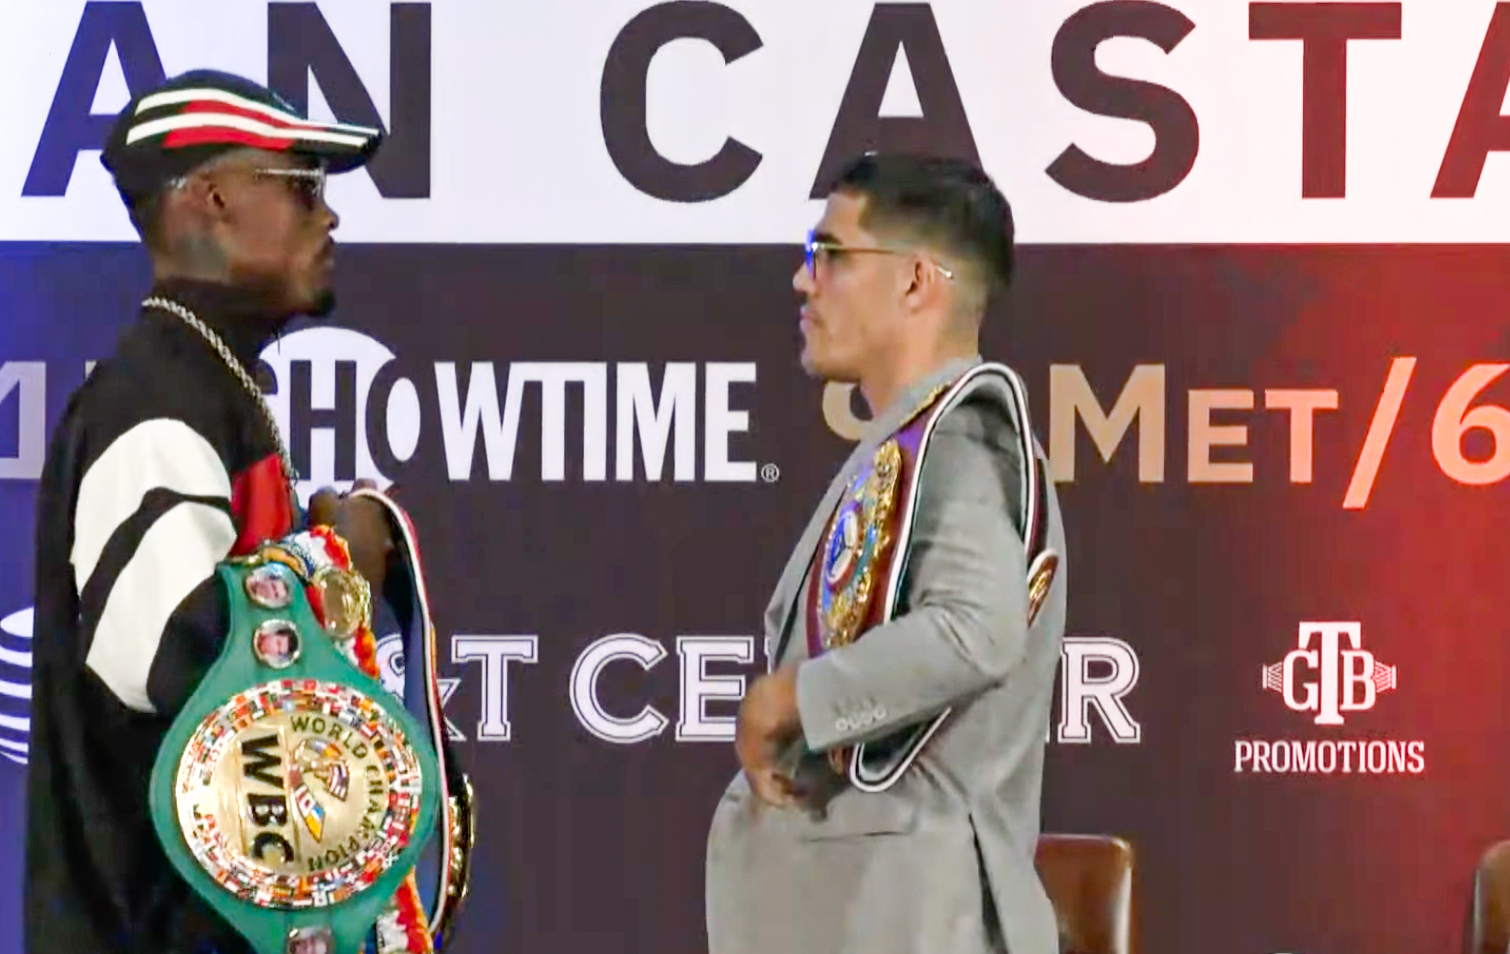 All or nothing! Charlo and Castaño face to face | Boxen247.com (Kristian von Sponneck)